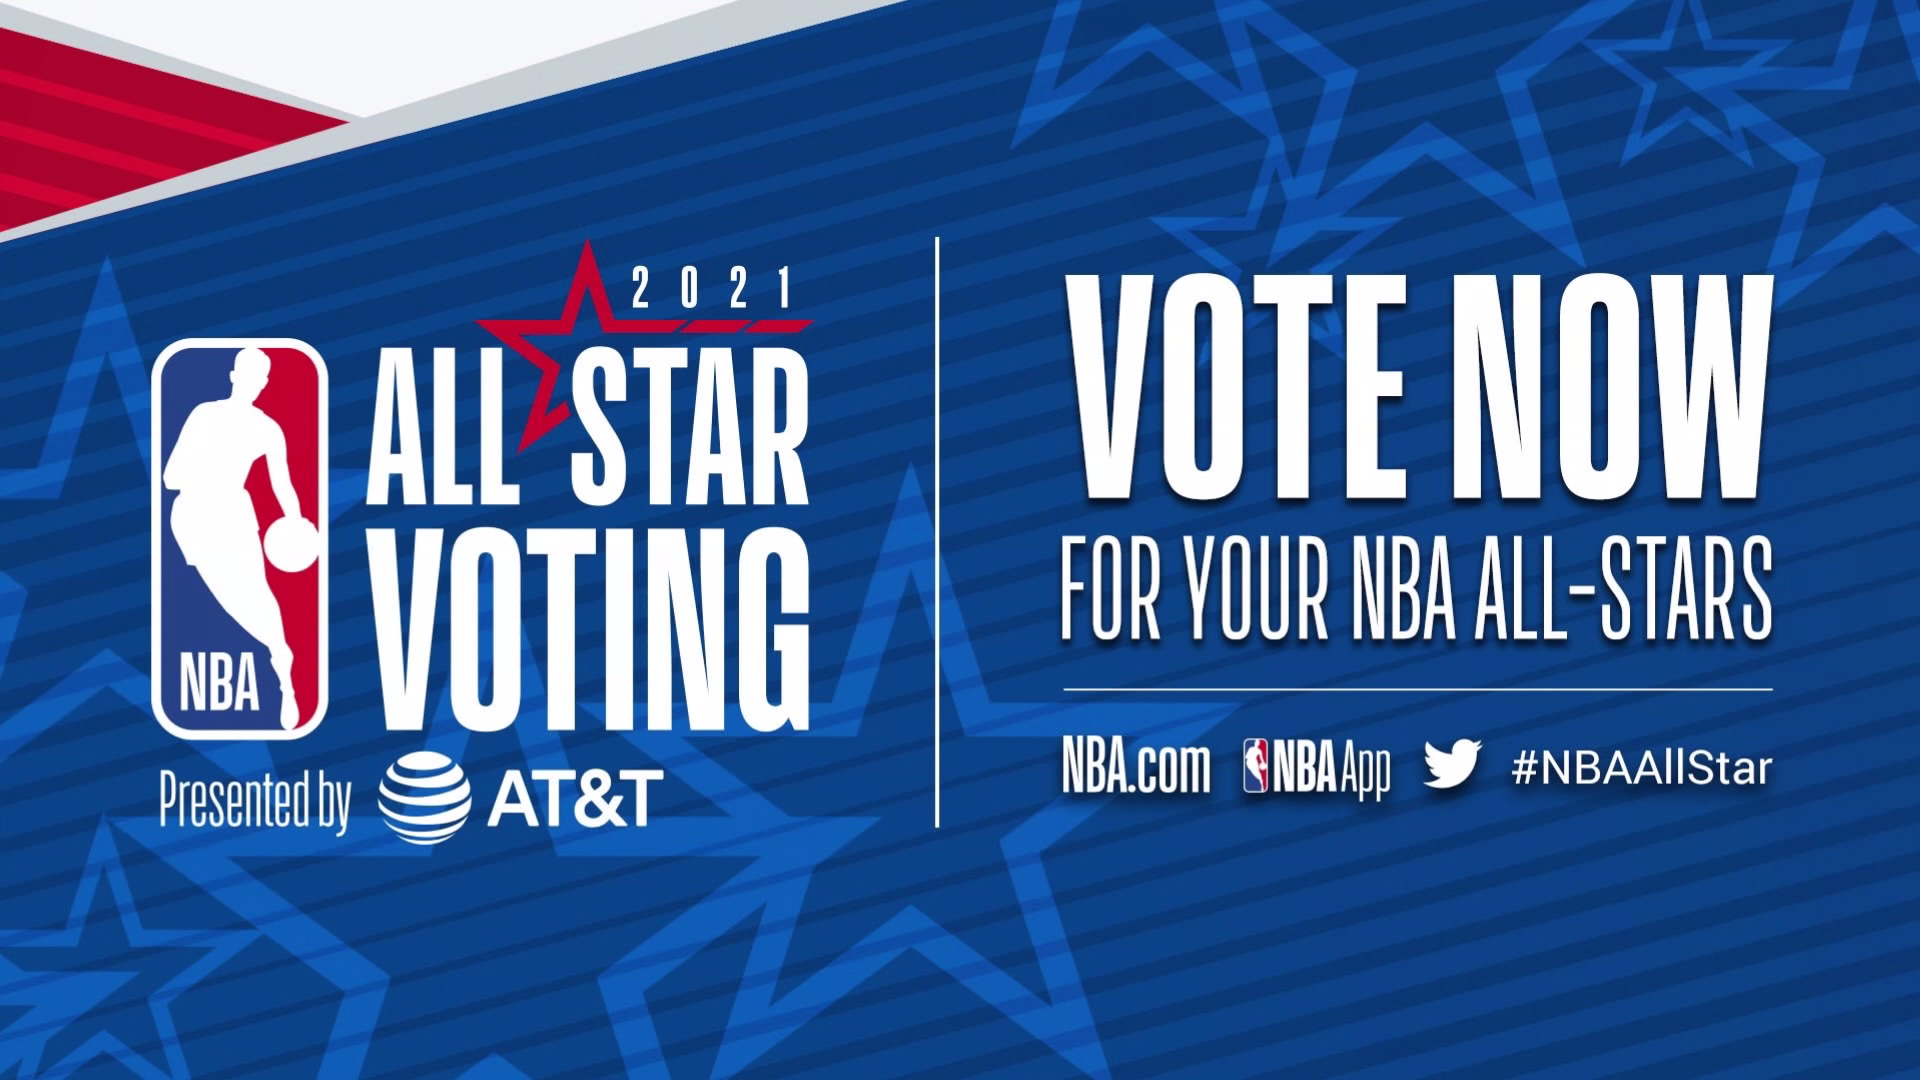 2021 All-Star Voting